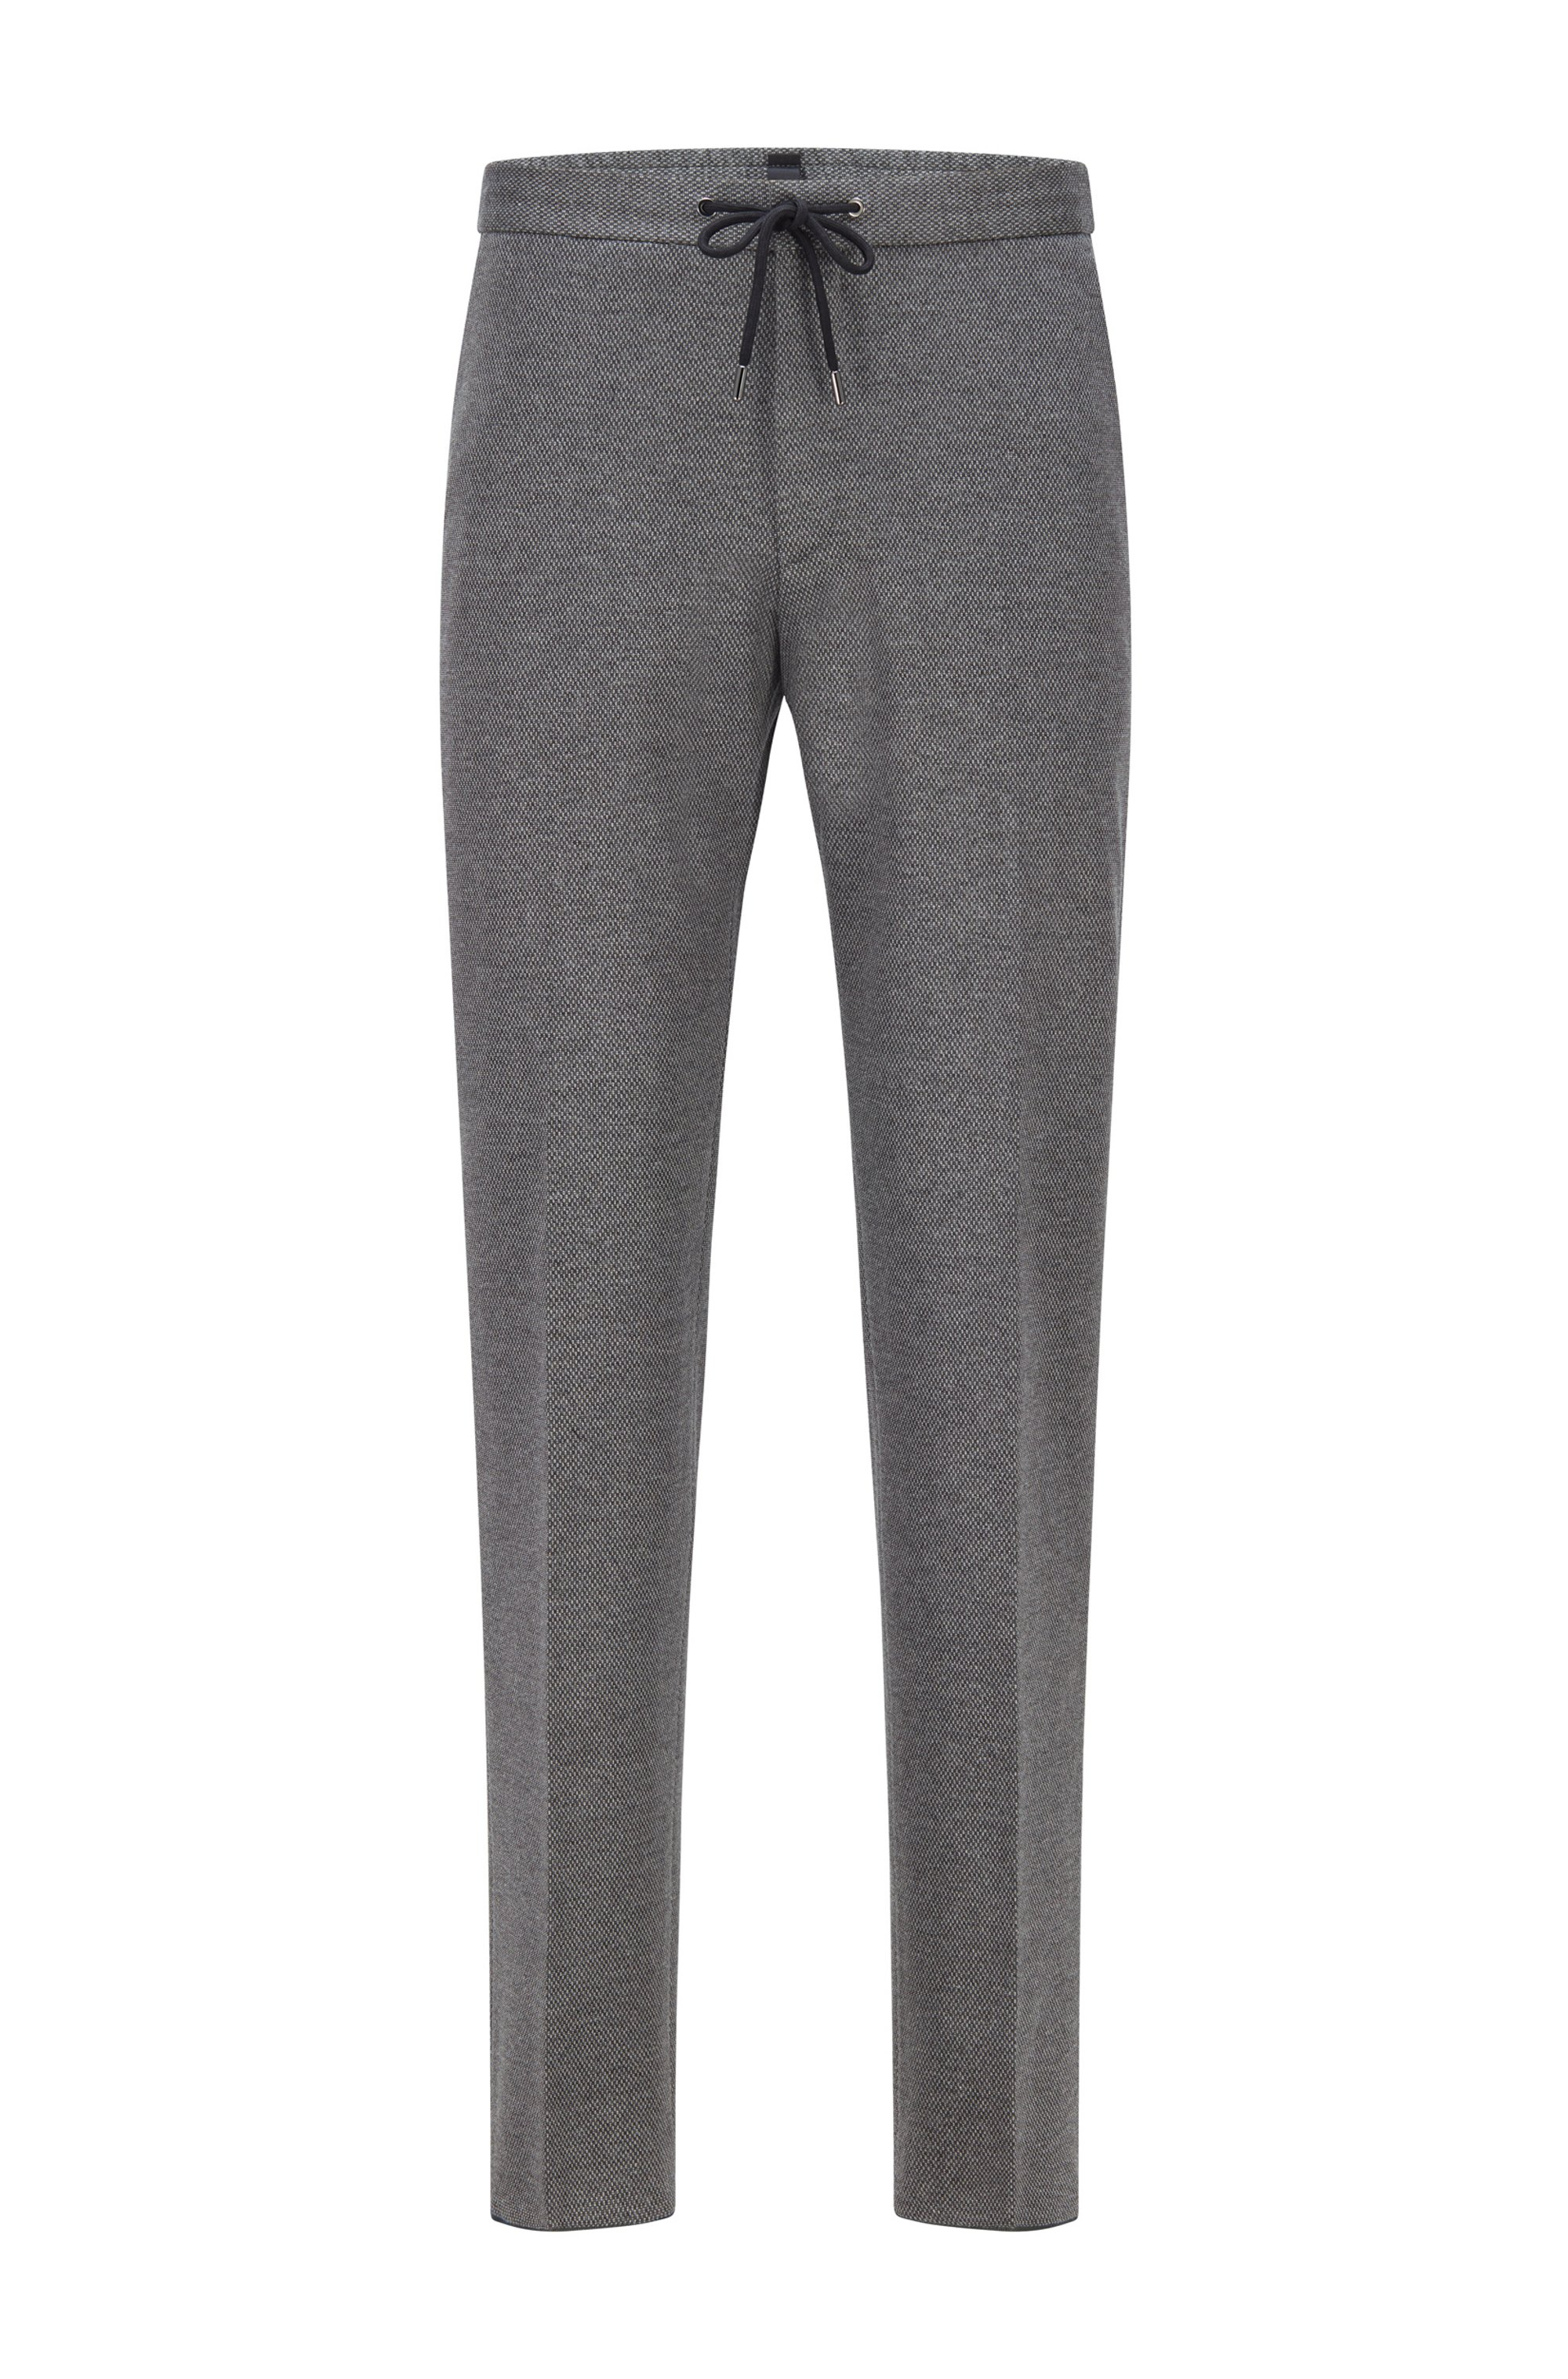 Slim-fit pants in micro-patterned fabric, Silver